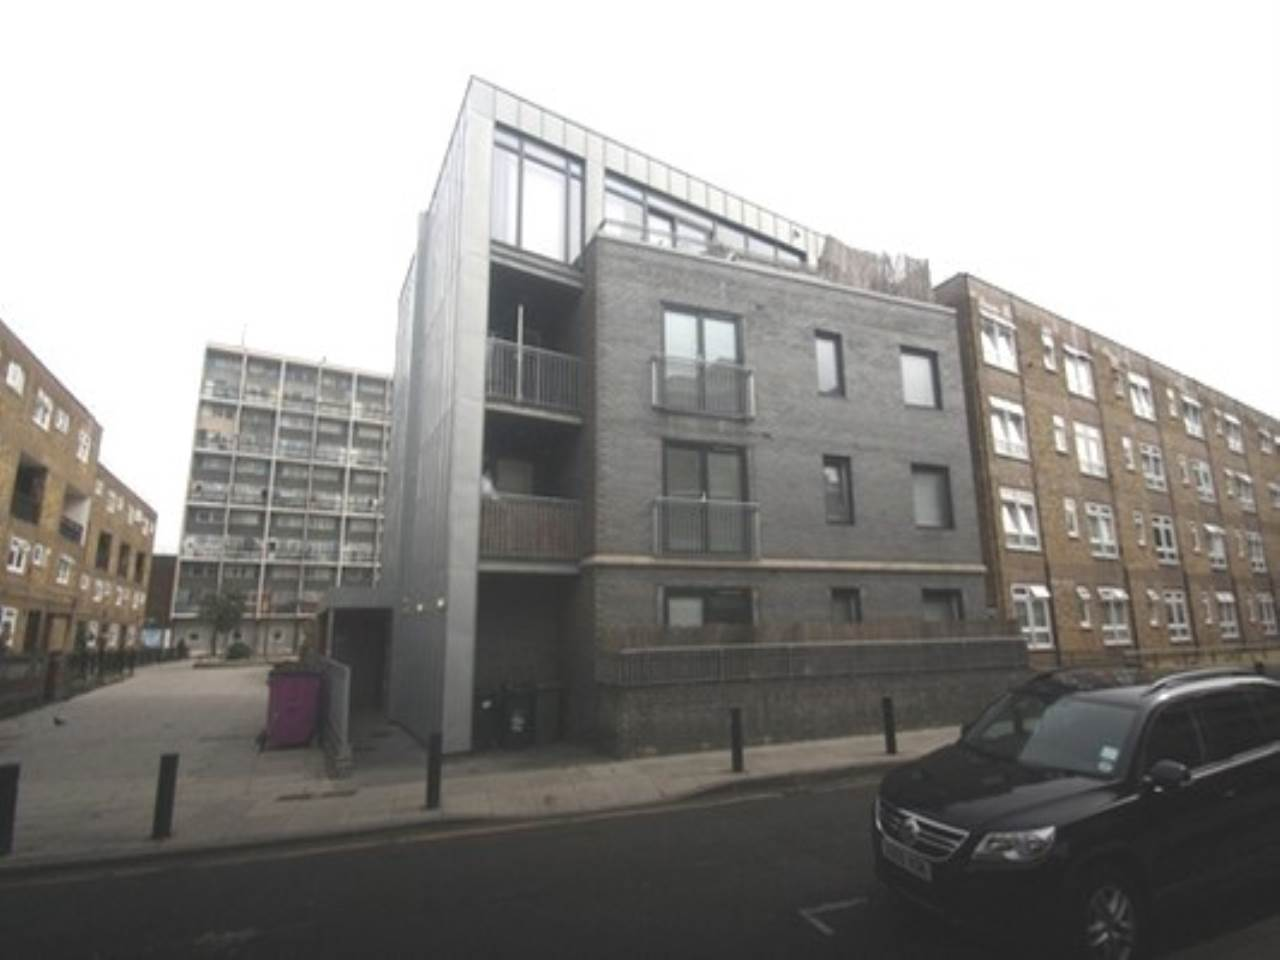 2 bed flat to rent in Headlam Street, Whitechapel, E1 5